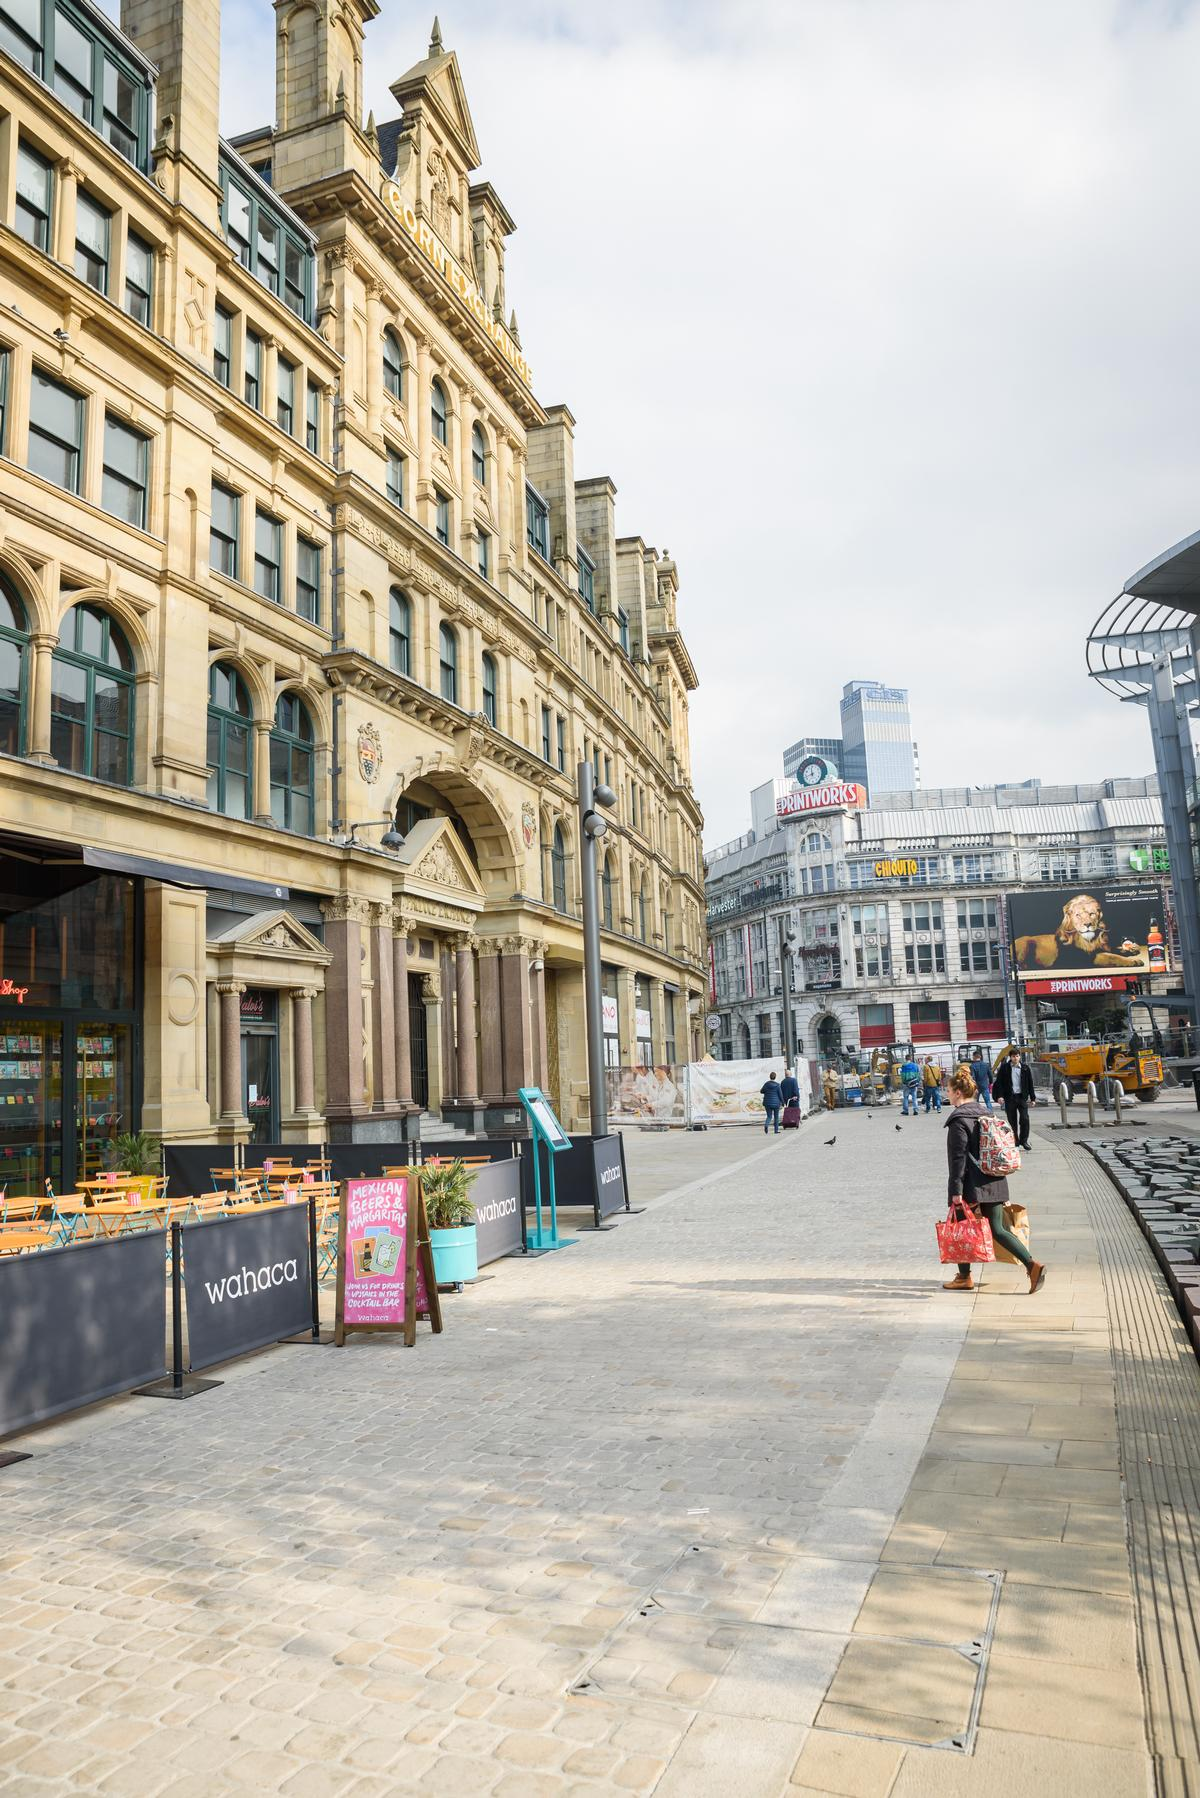 The restaurant is situated inside and below Manchester's Victorian-era Corn Exchange / Shutterstock